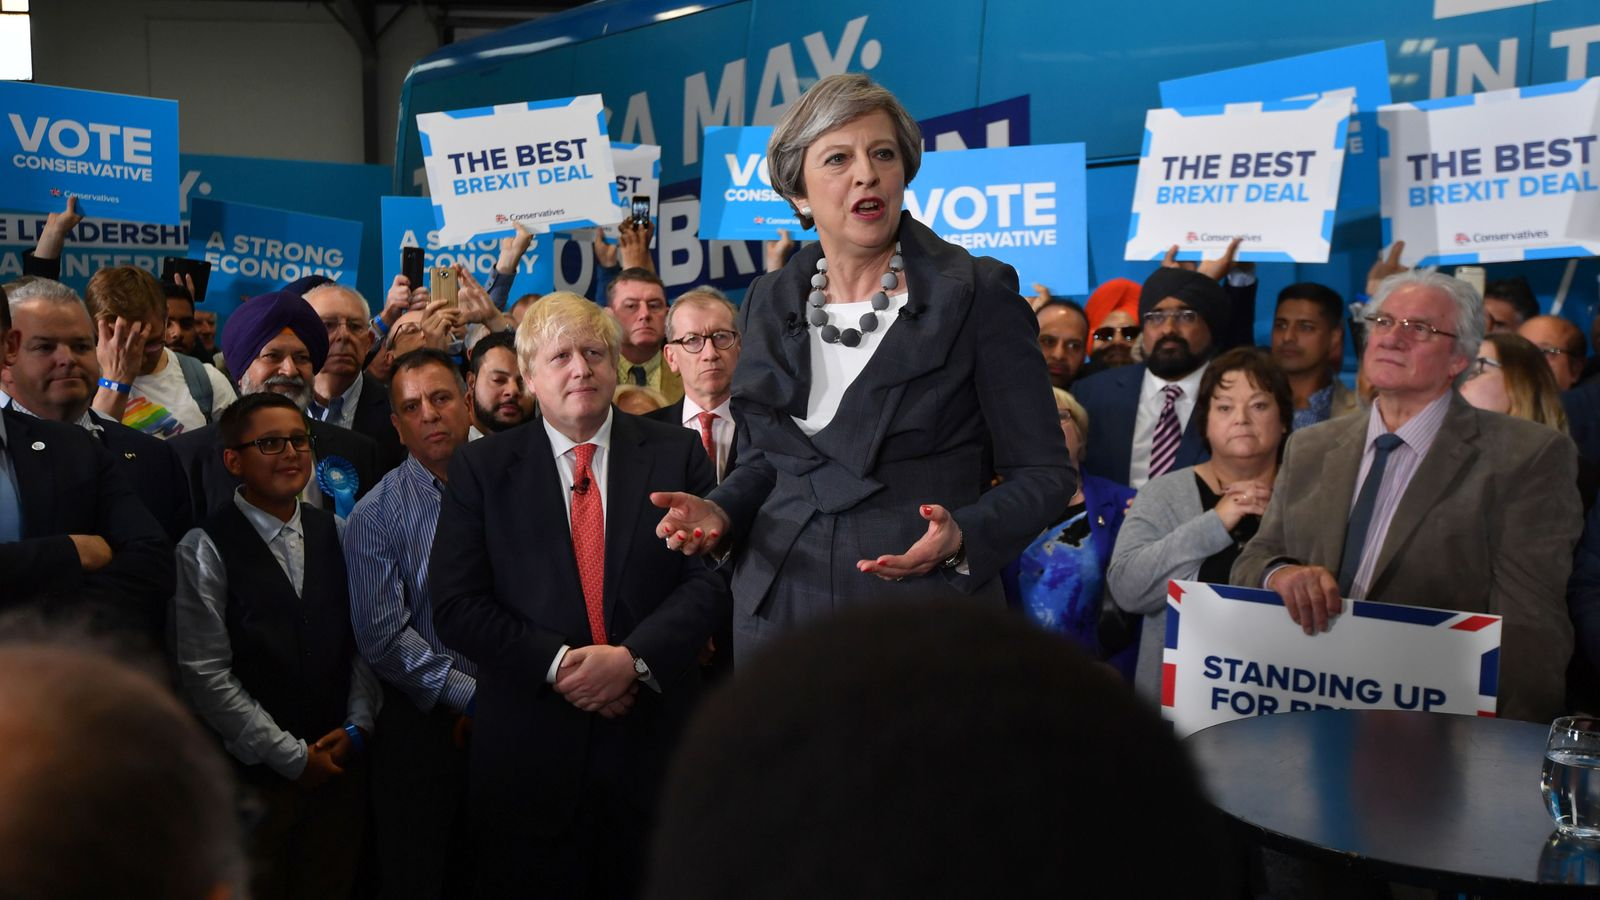 Theresa May is joined by Foreign Secretary Boris Johnson at a campaign event in Slough